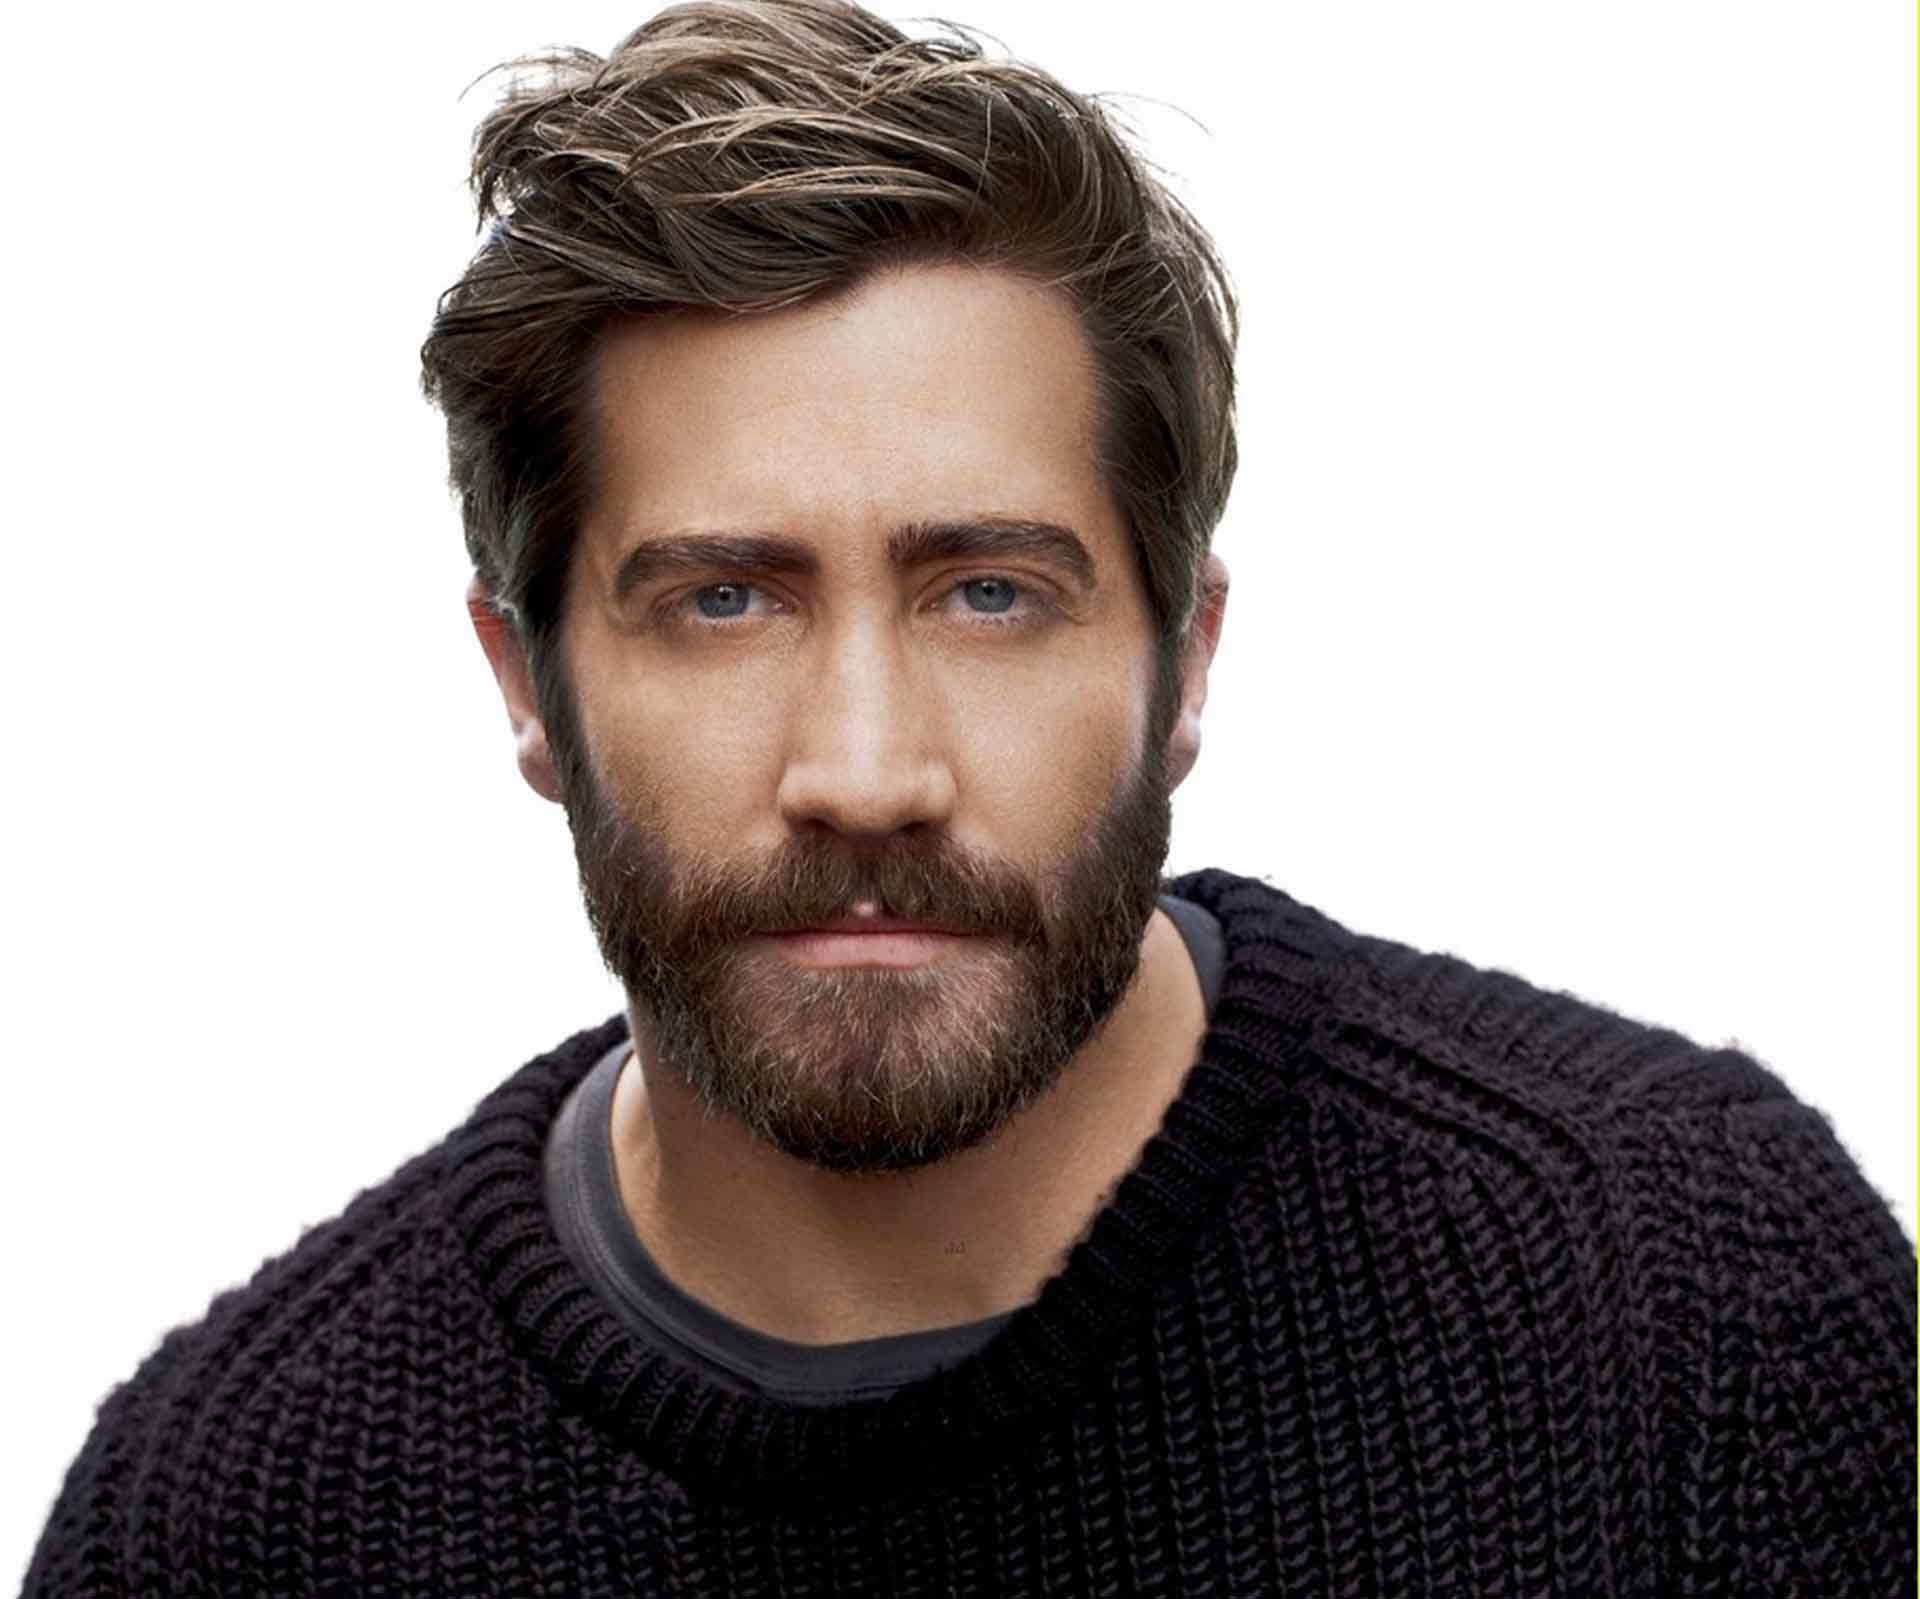 Jake Gyllenhaal Wallpaper 20   1920 X 1599 stmednet 1920x1599